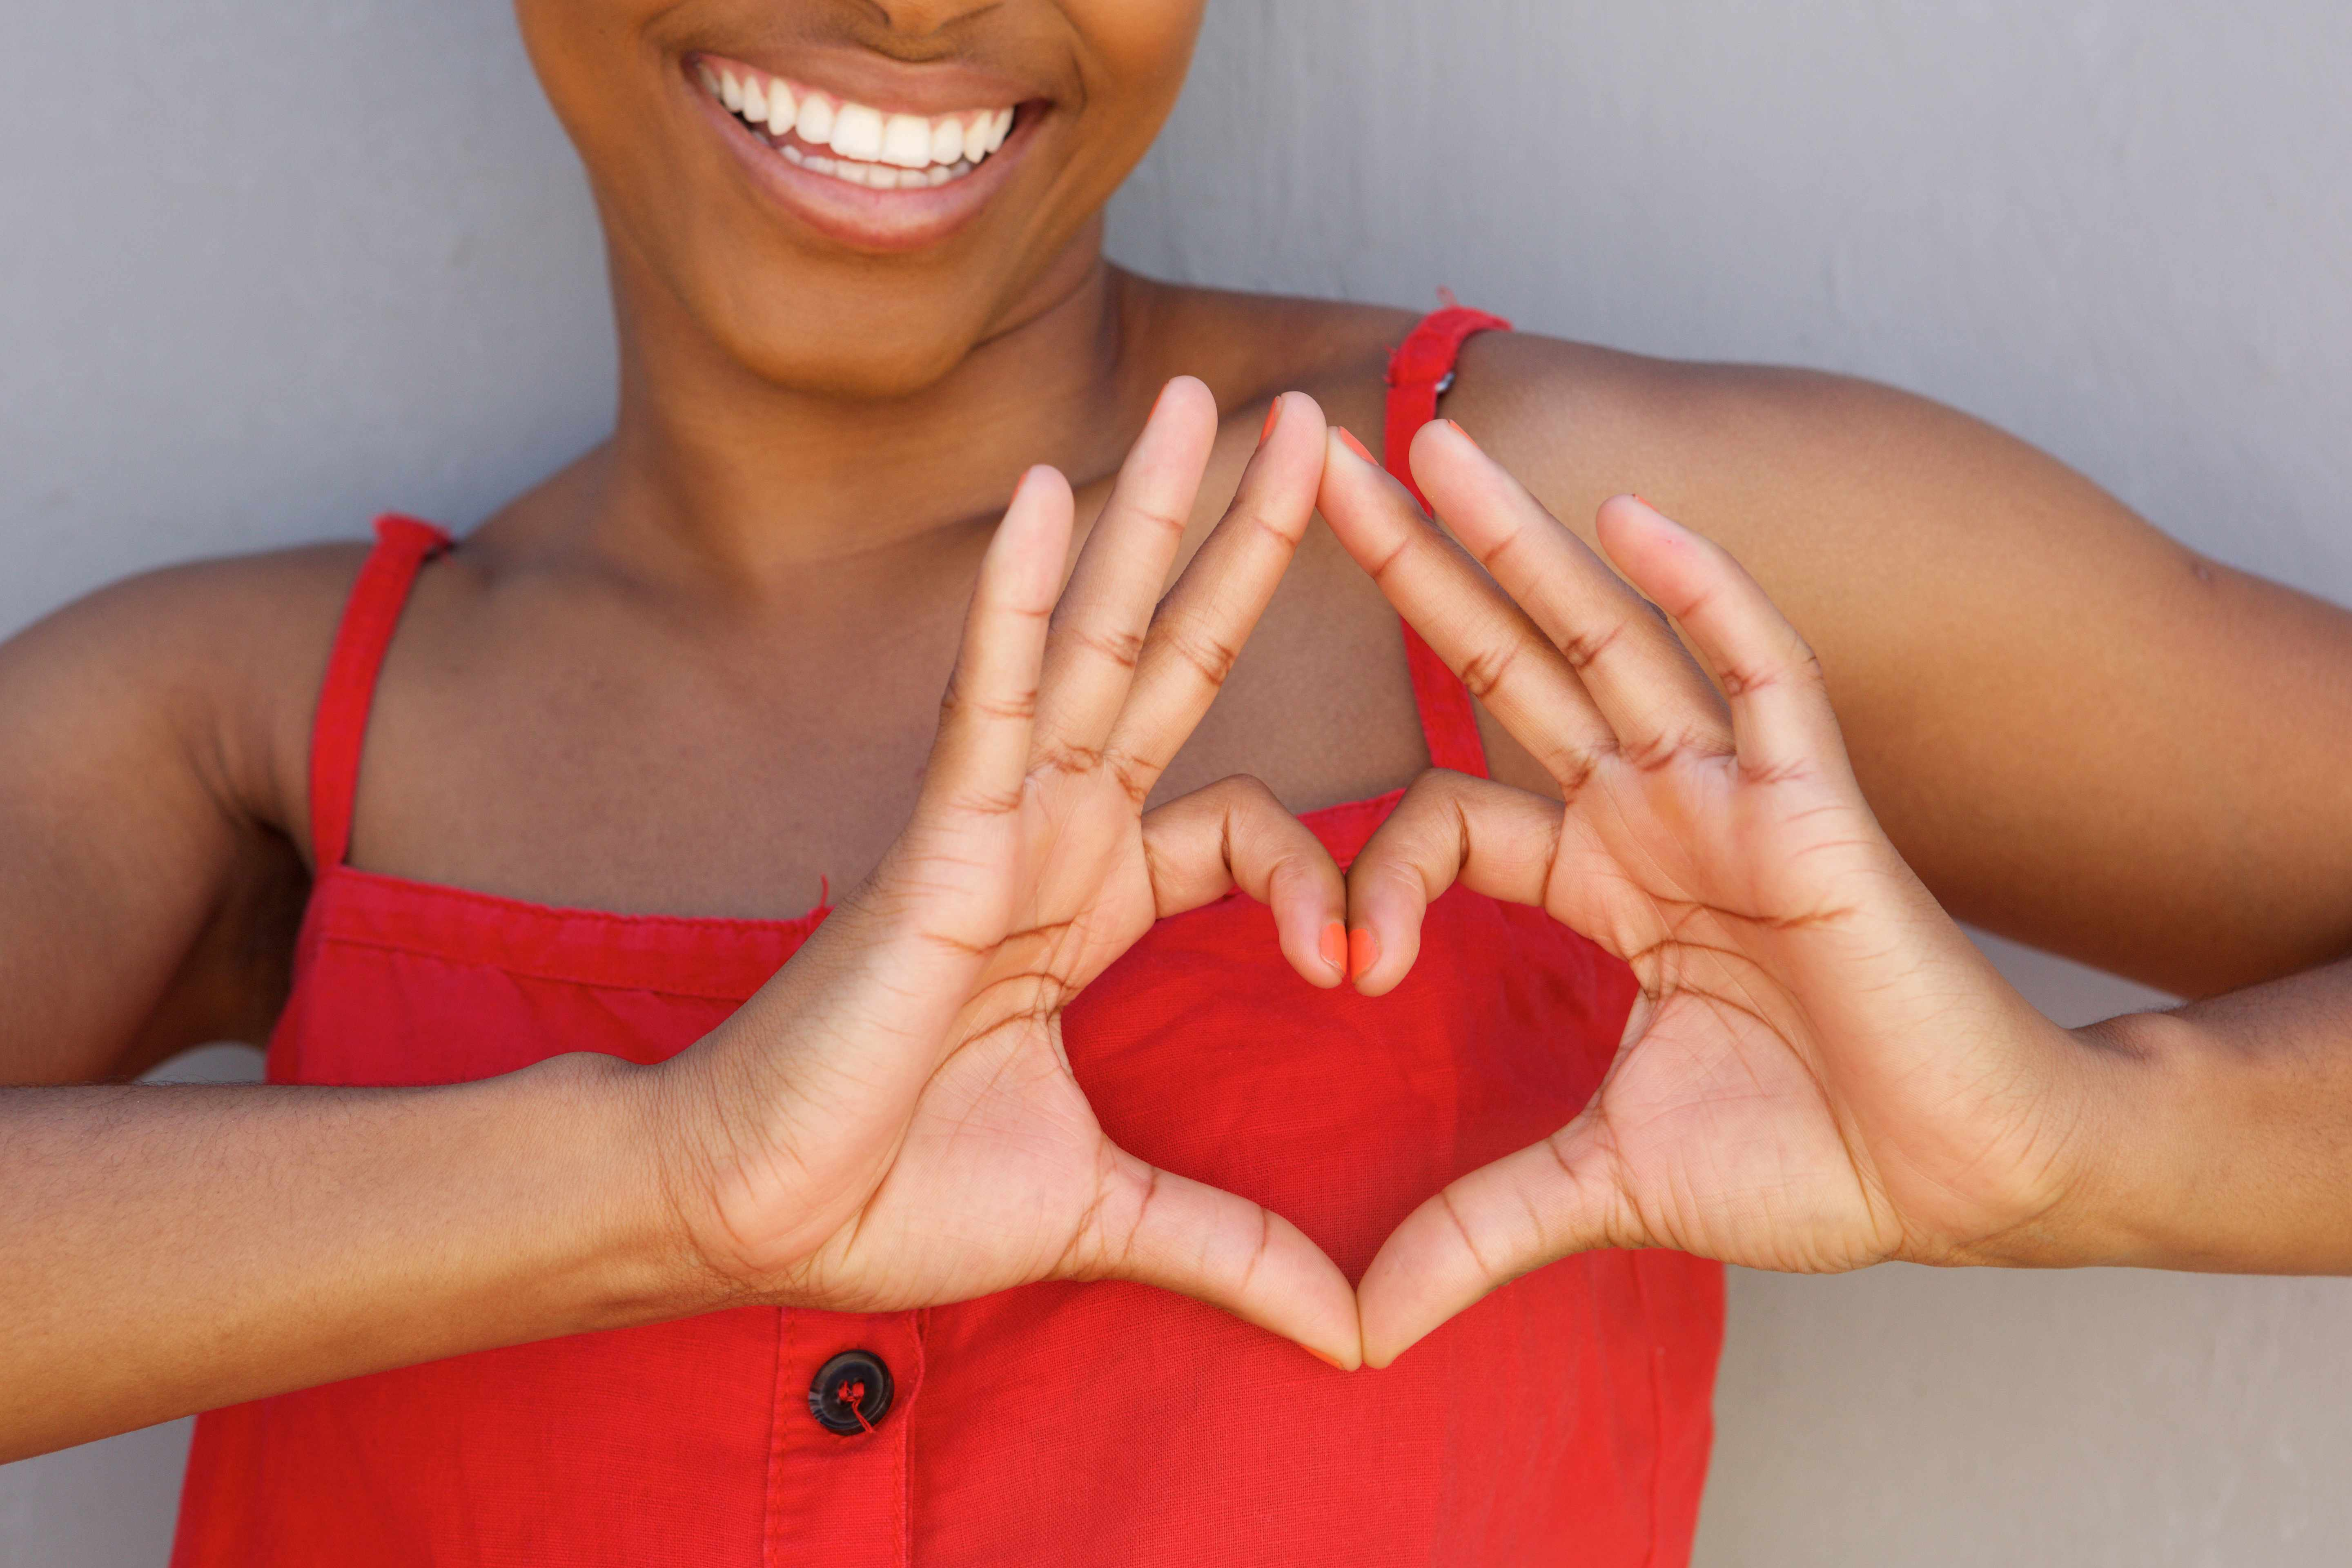 a woman in a red shirt smiling and forming her hands in the shape of a heart